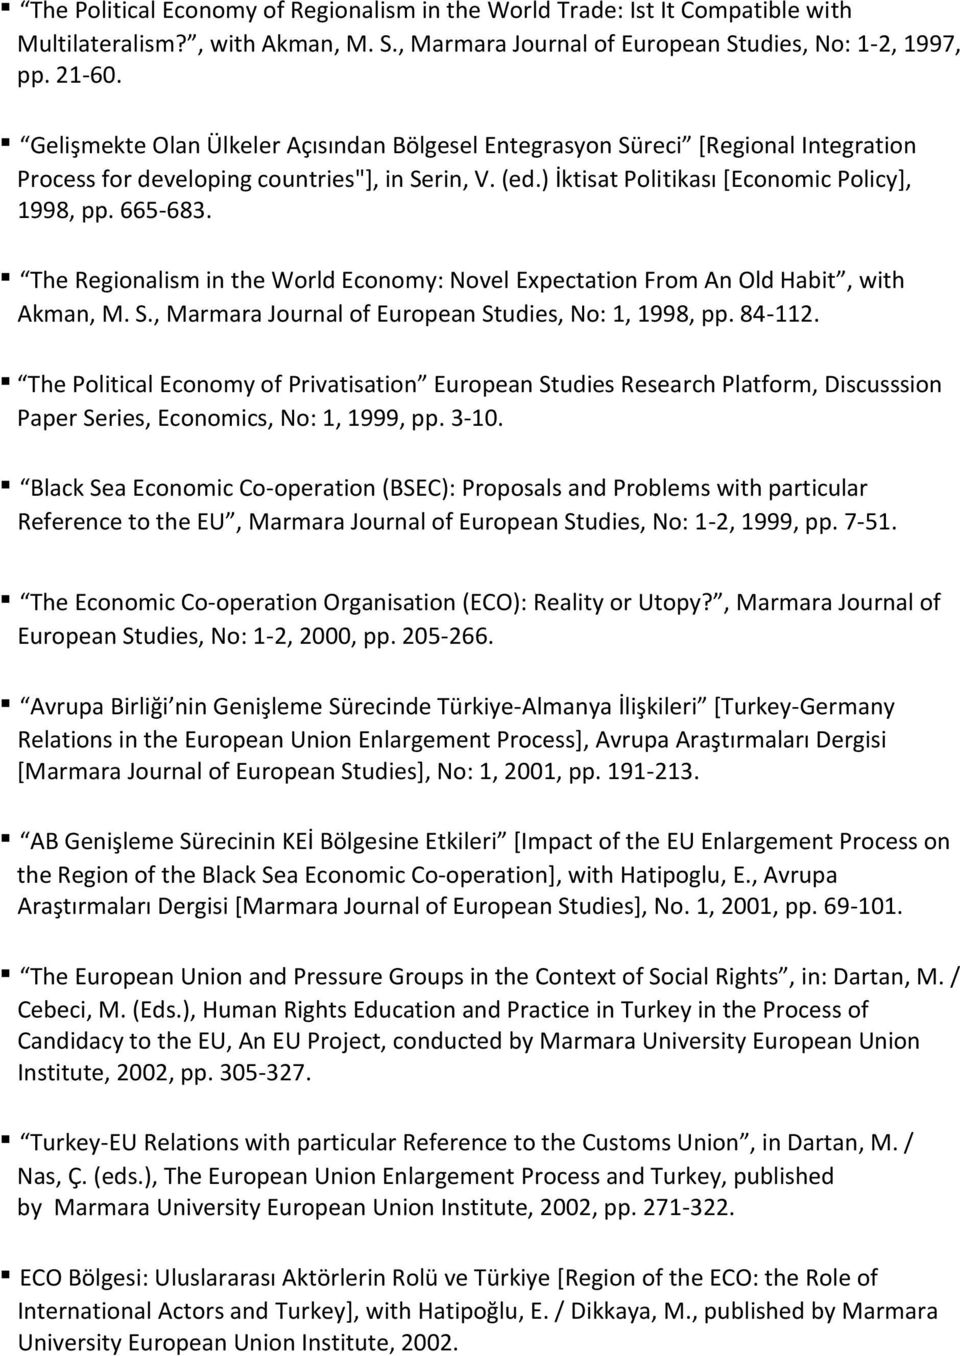 The Regionalism in the World Economy: Novel Expectation From An Old Habit, with Akman, M. S., Marmara Journal of European Studies, No: 1, 1998, pp. 84-112.